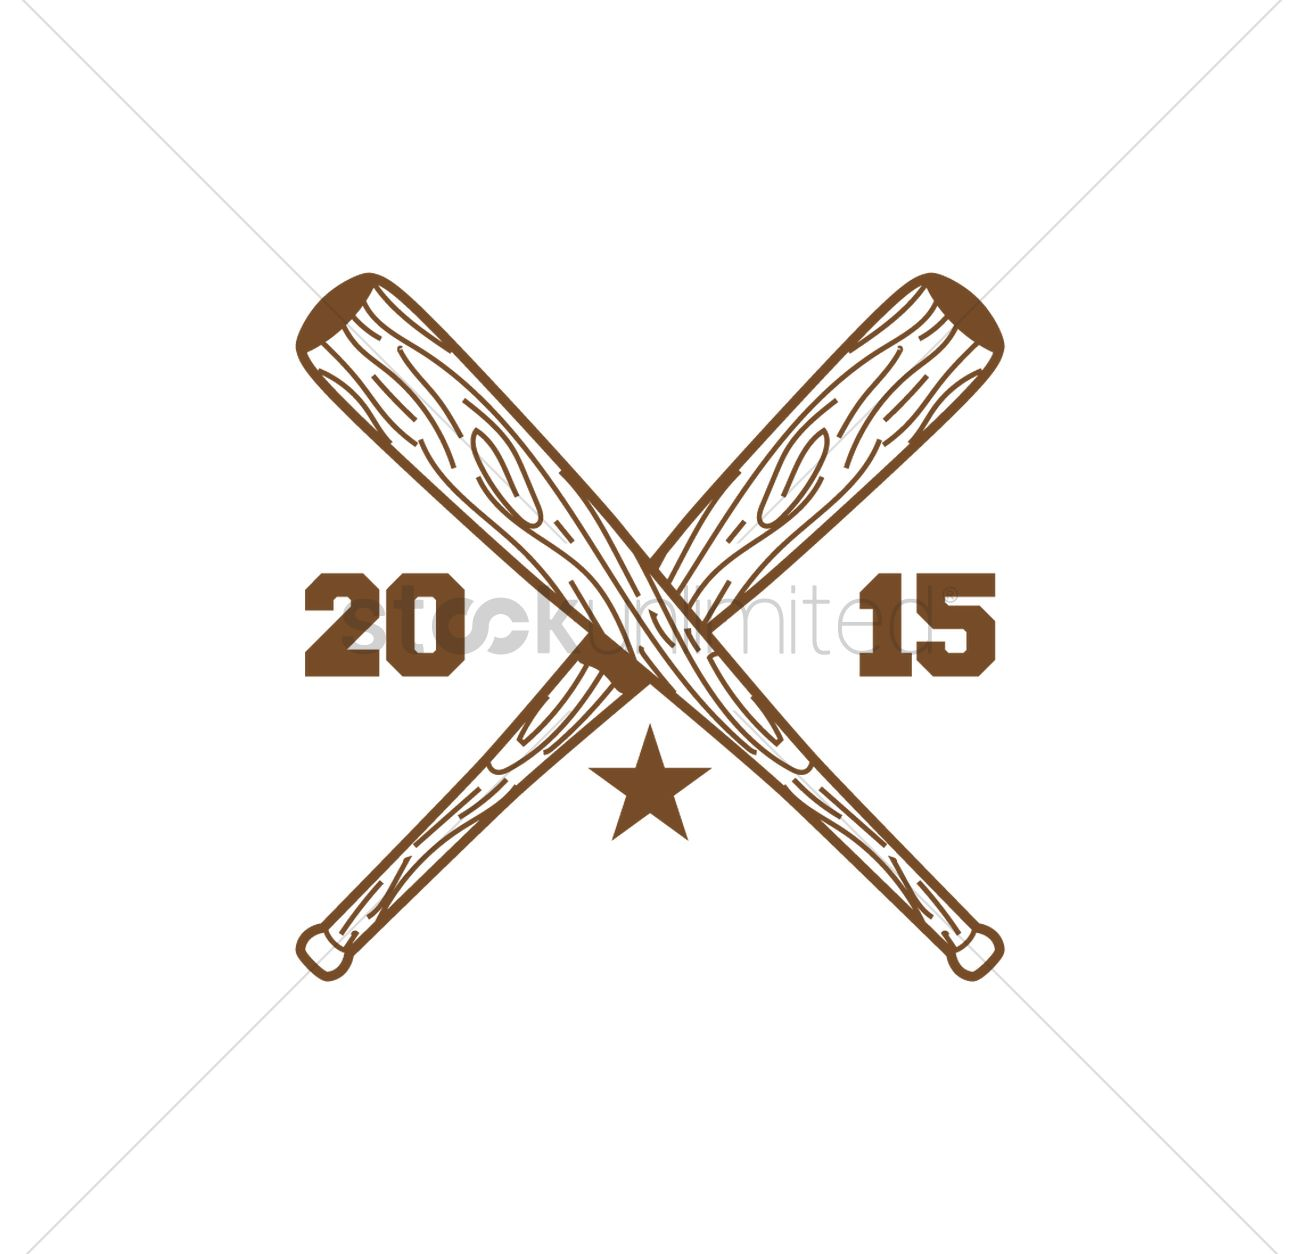 Crossed baseball bat Vector Image - 1523845 | StockUnlimited